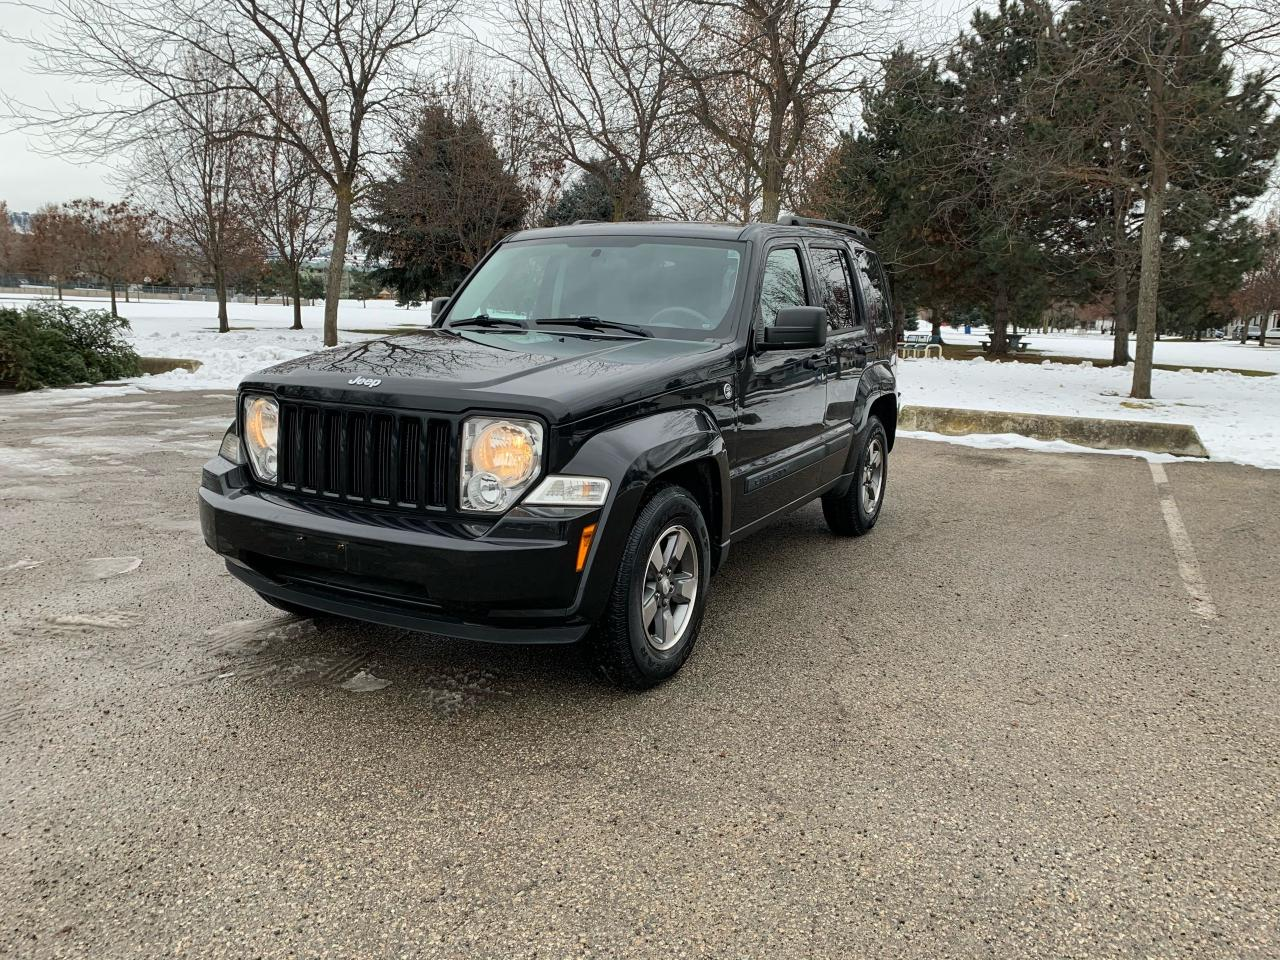 2008 Jeep Liberty For Sale >> Used 2008 Jeep Liberty For Sale In Kelowna British Columbia